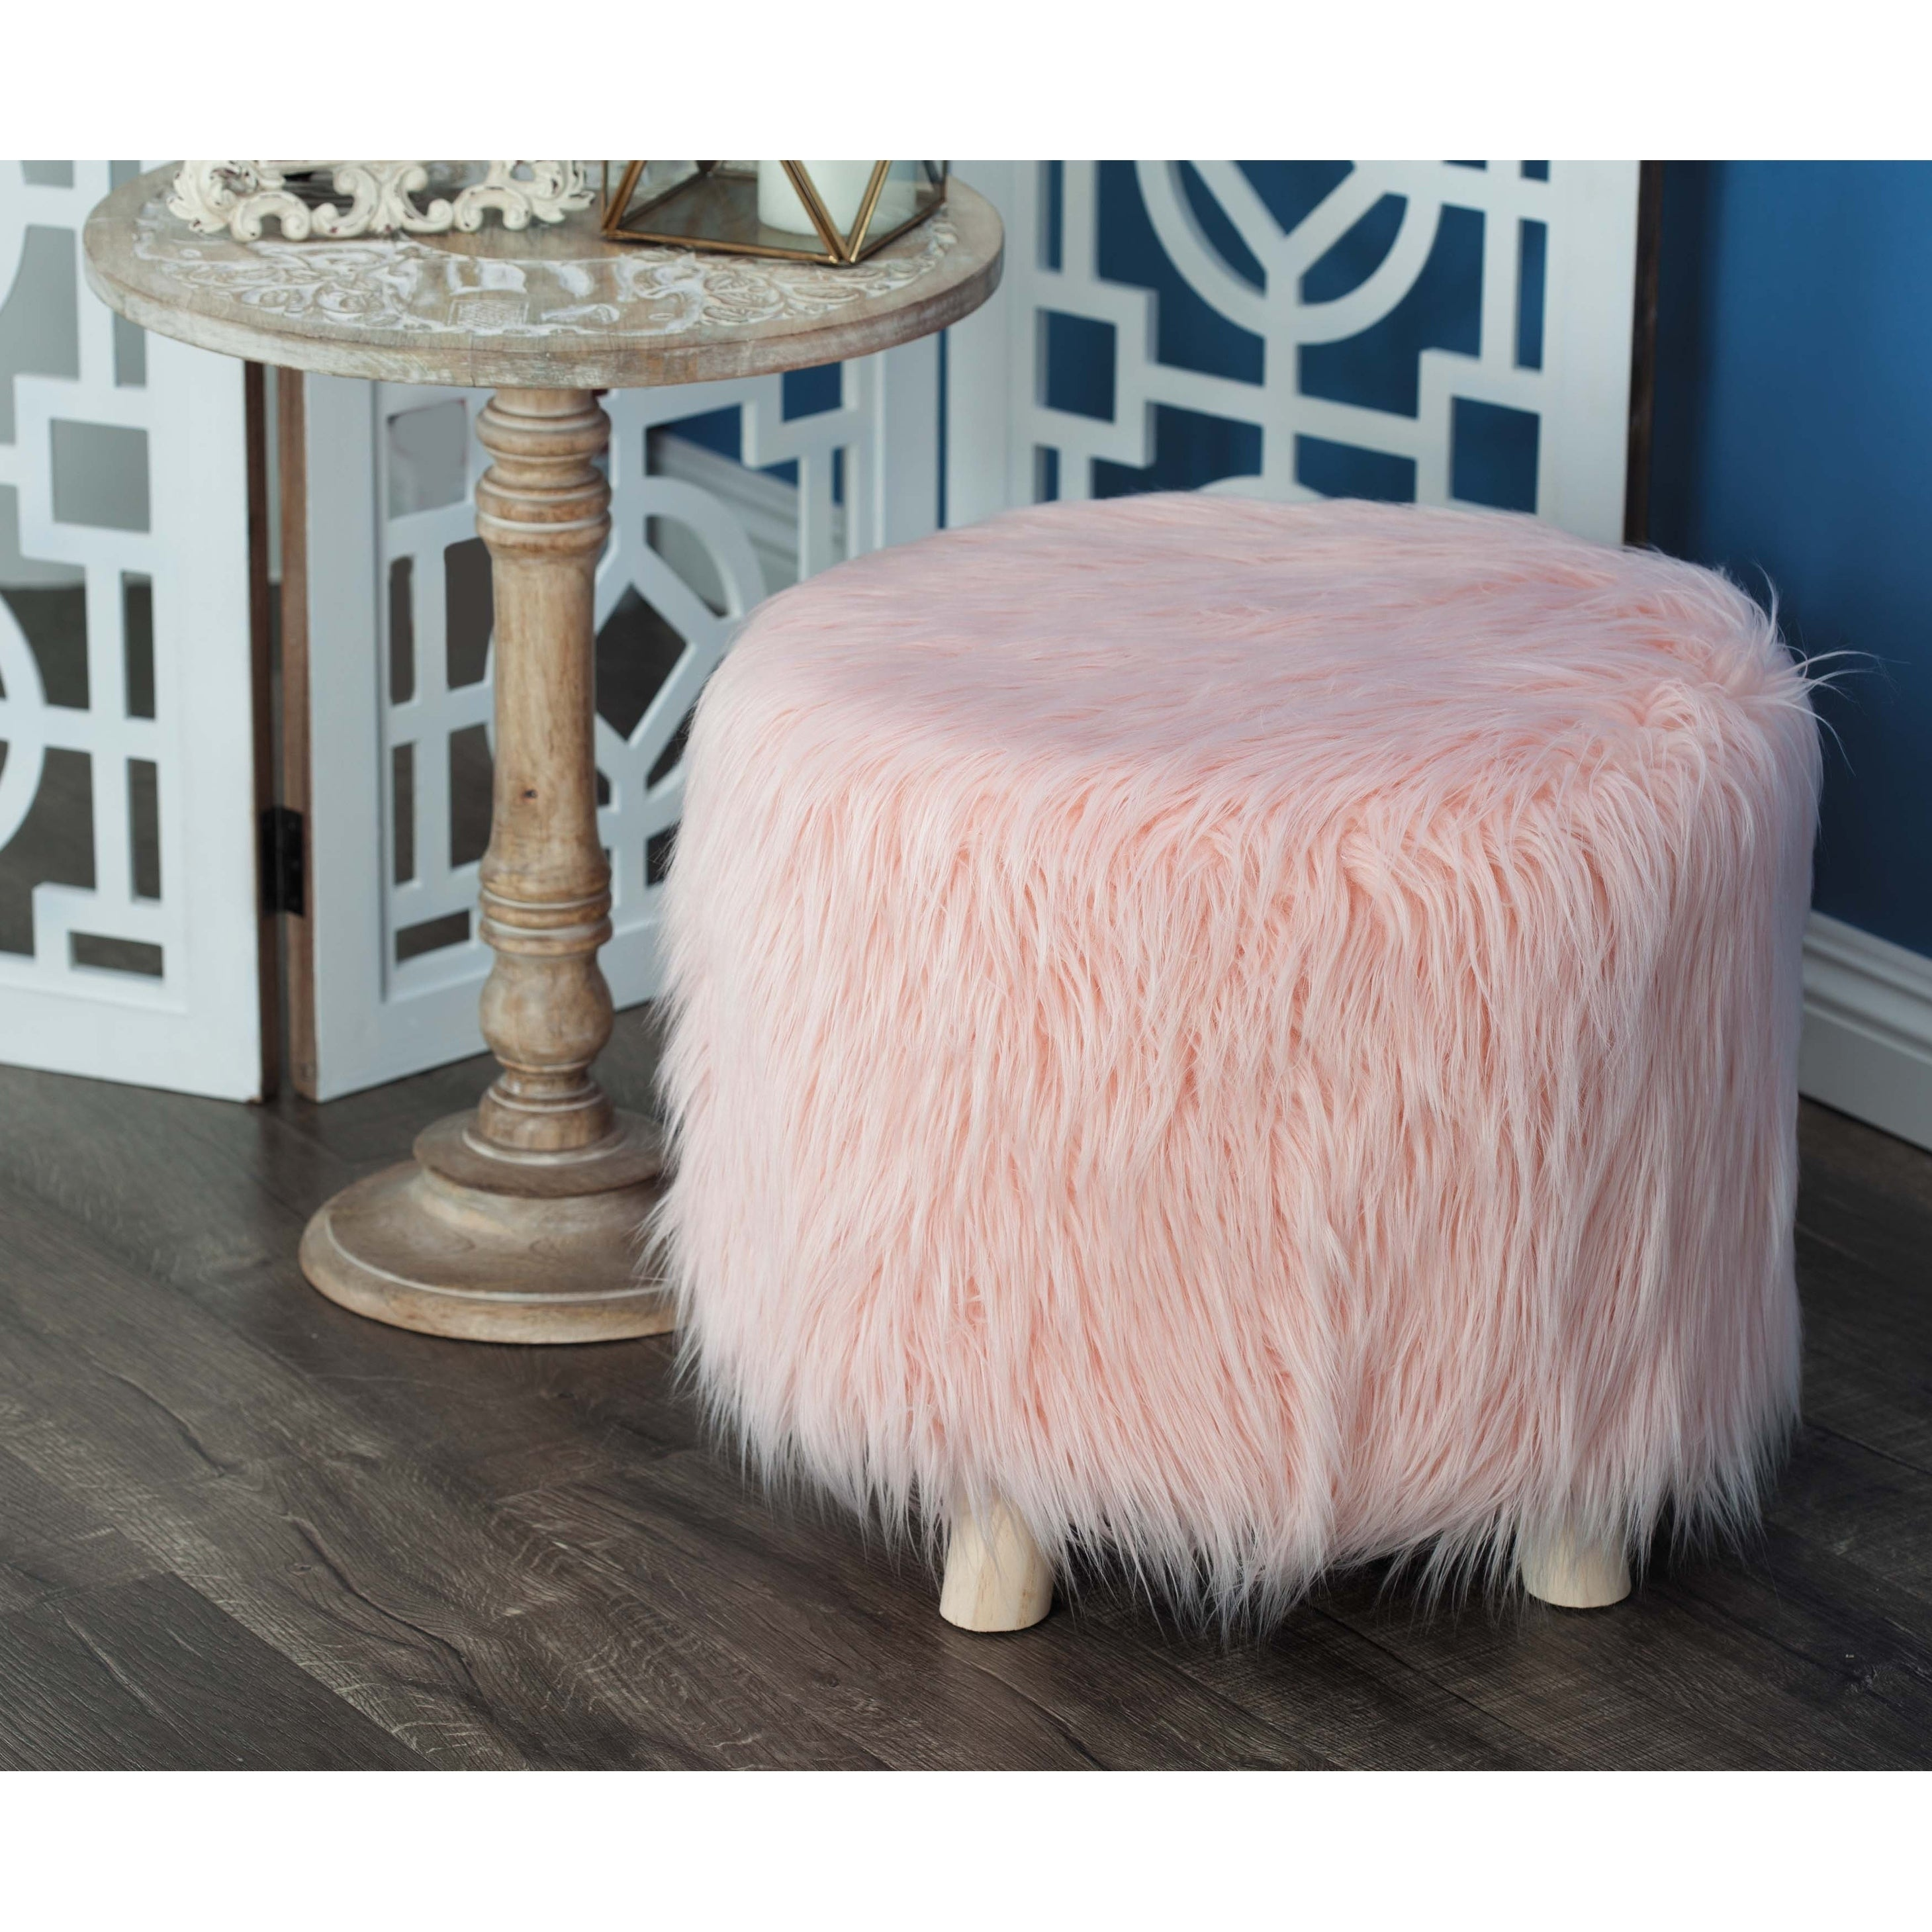 Remarkable Contemporary 16 X 19 Inch Wood And Faux Fur Footstool By Studio 350 Cjindustries Chair Design For Home Cjindustriesco